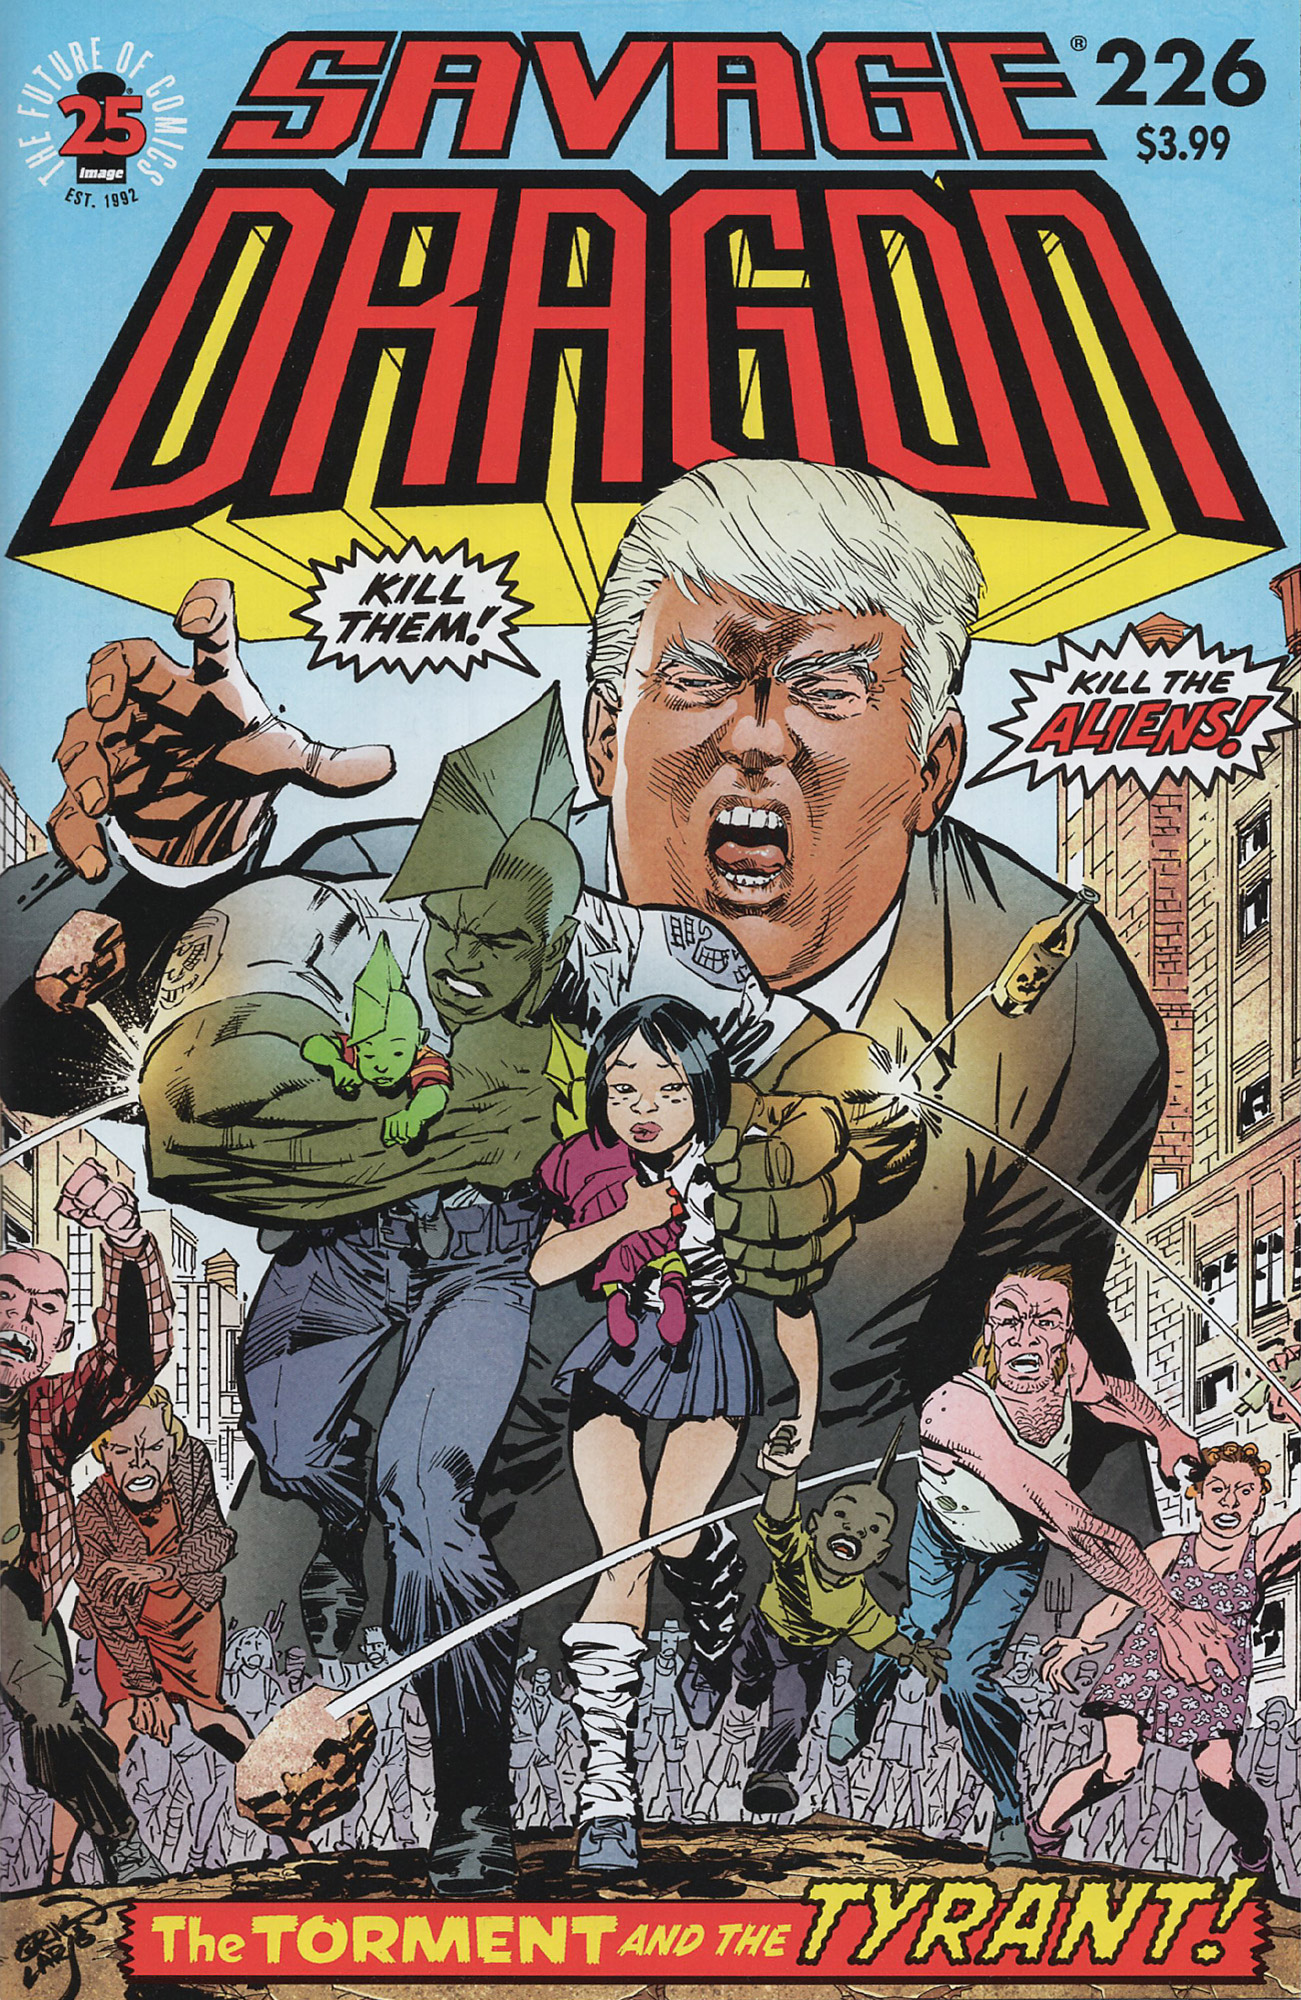 Cover Savage Dragon Vol.2 #226